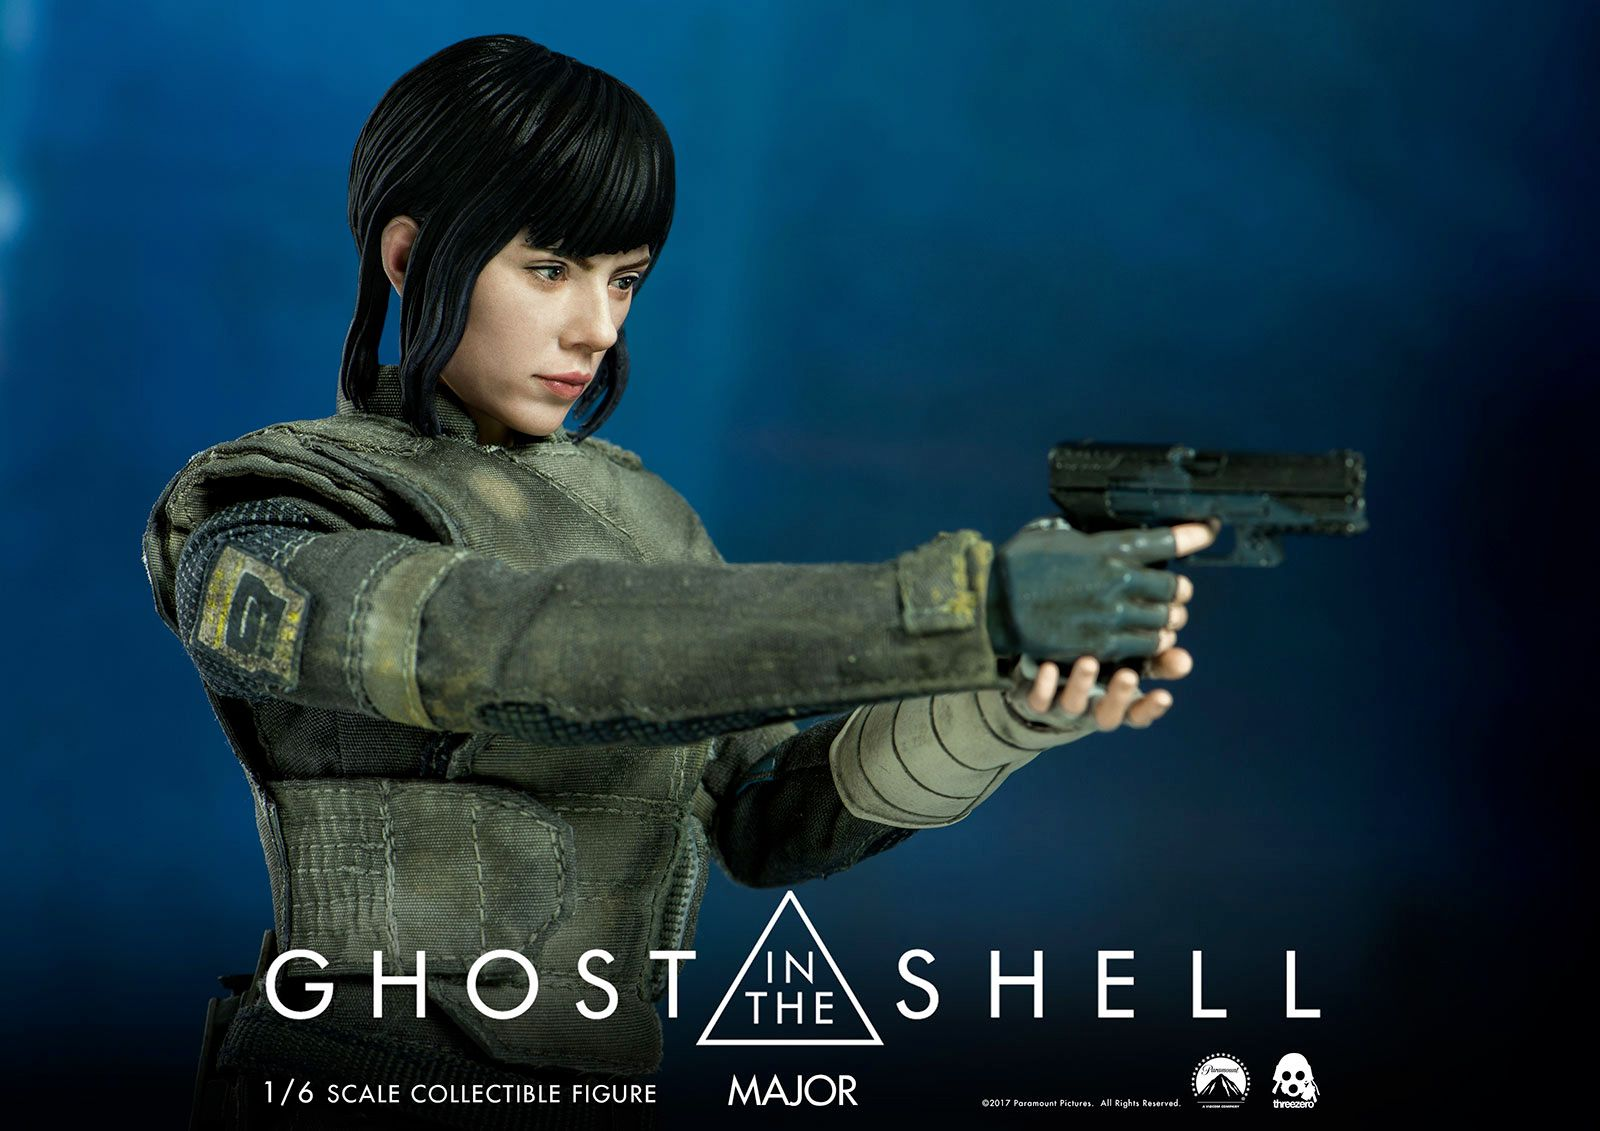 Ghost-In-The-Shell-MAJOR-Collectible-Action-Figure-07